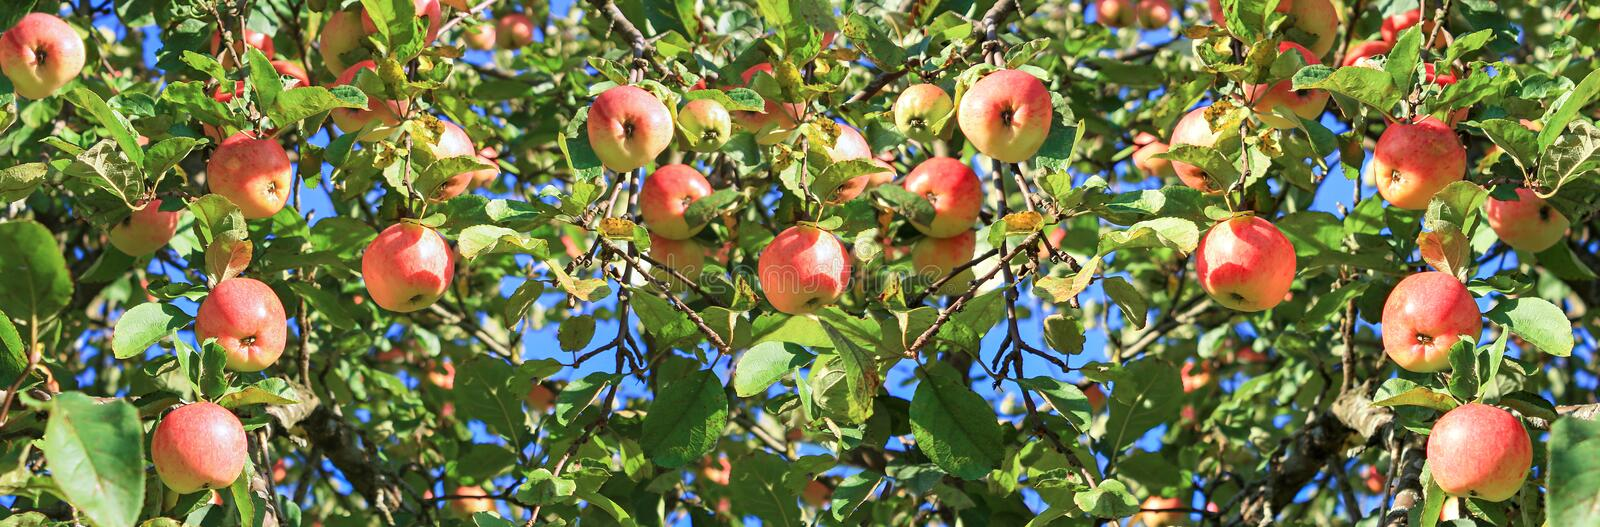 Harvesting fruits apples in orchard,panorama royalty free stock photos